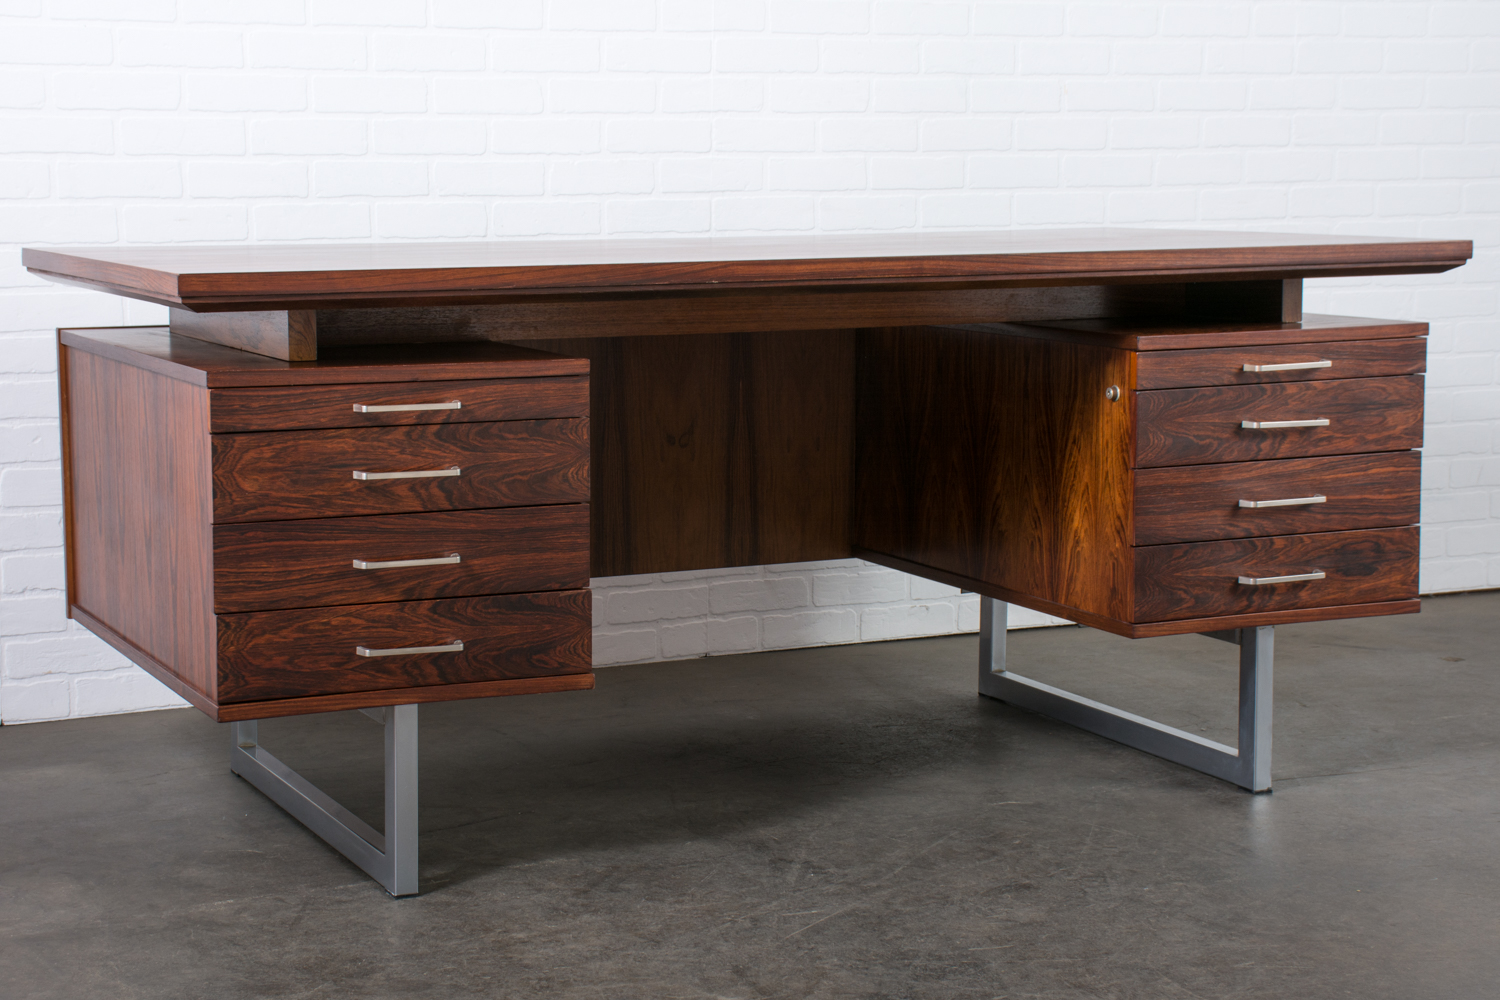 Image of: Mid Century Modern Rosewood Executive Desk 1960s Mid Century Modern Finds